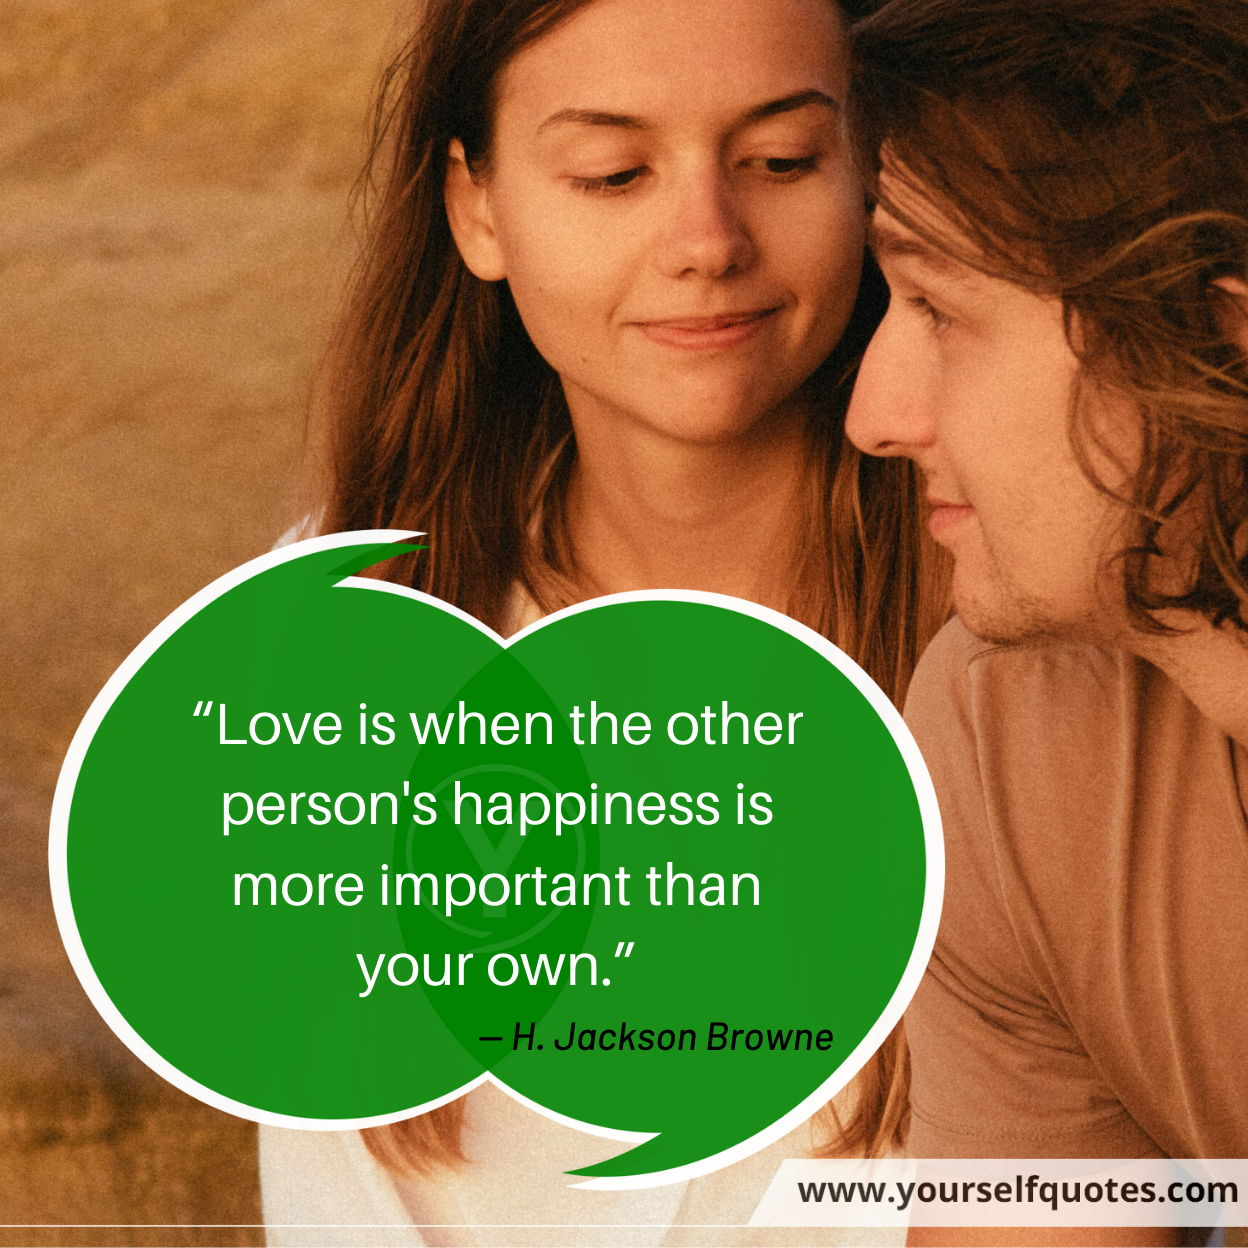 Quotes on Love by H. Jackson Browne